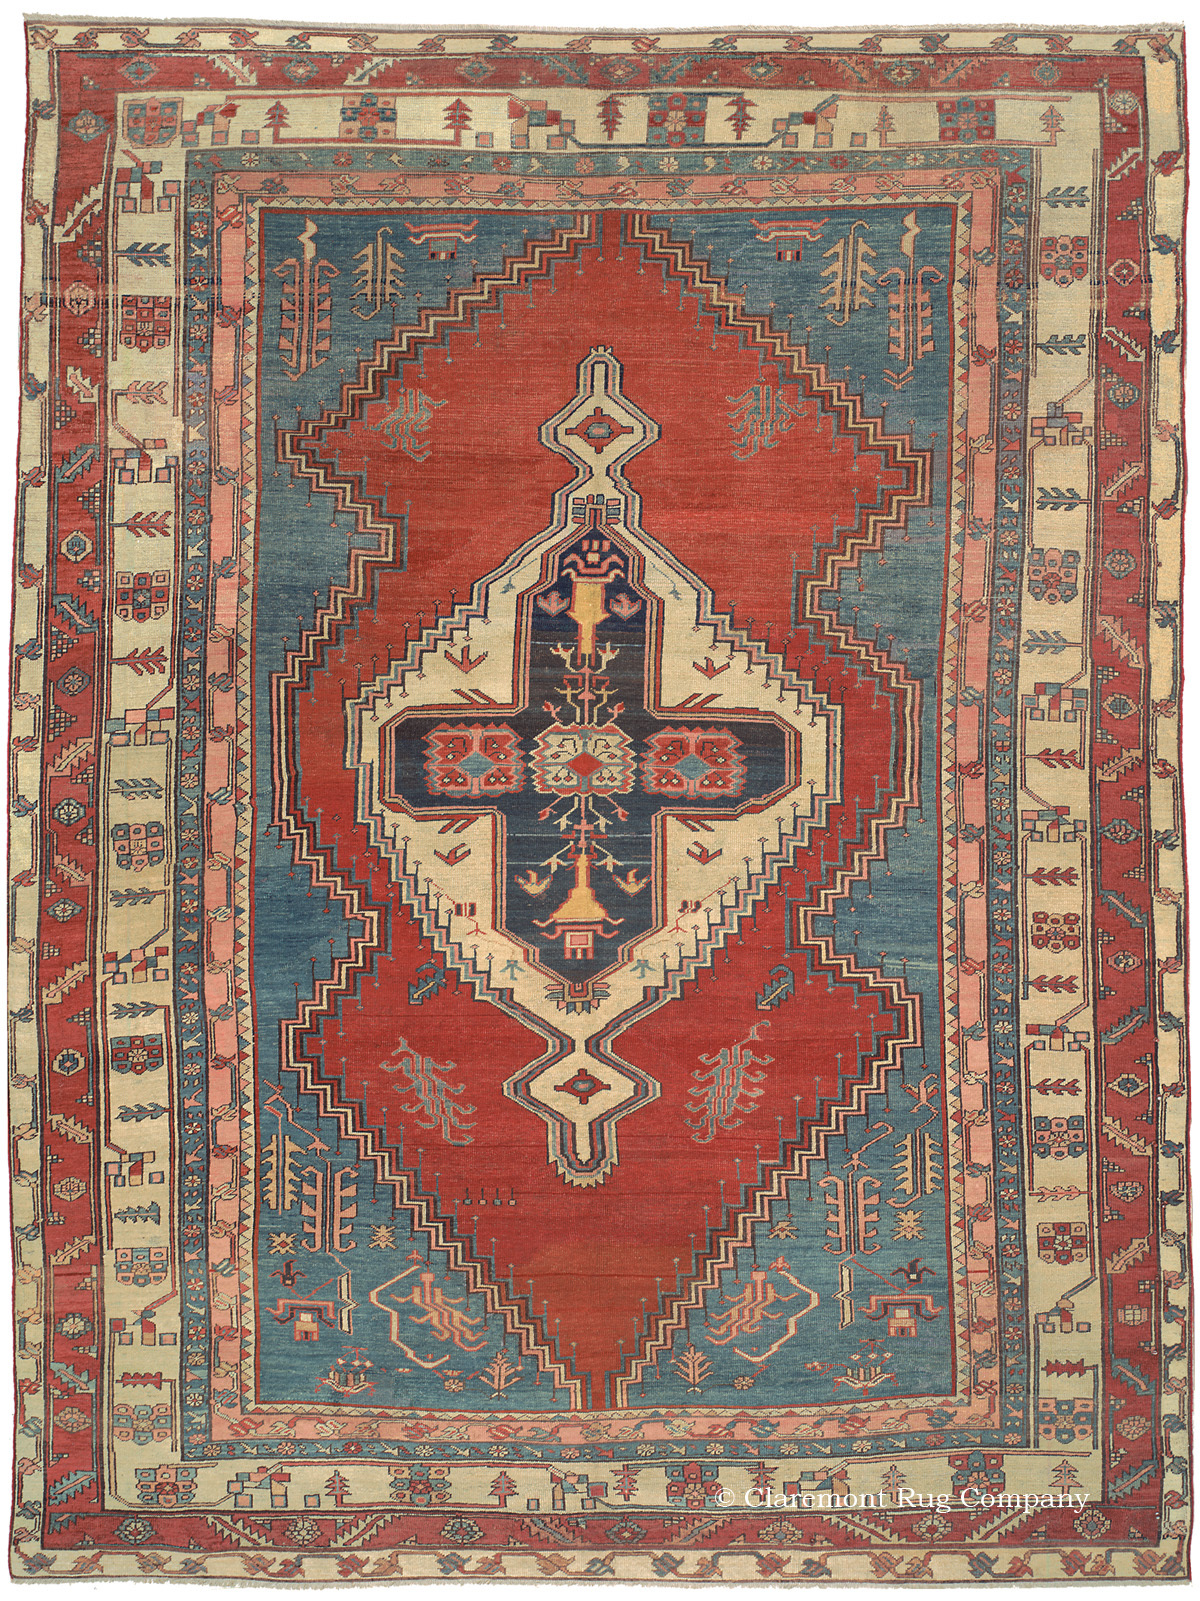 Awesome Claremont Rug Company Exhibits U201cBest Of The Best Antique Rugs Sold In 2014u201d  | Business Wire